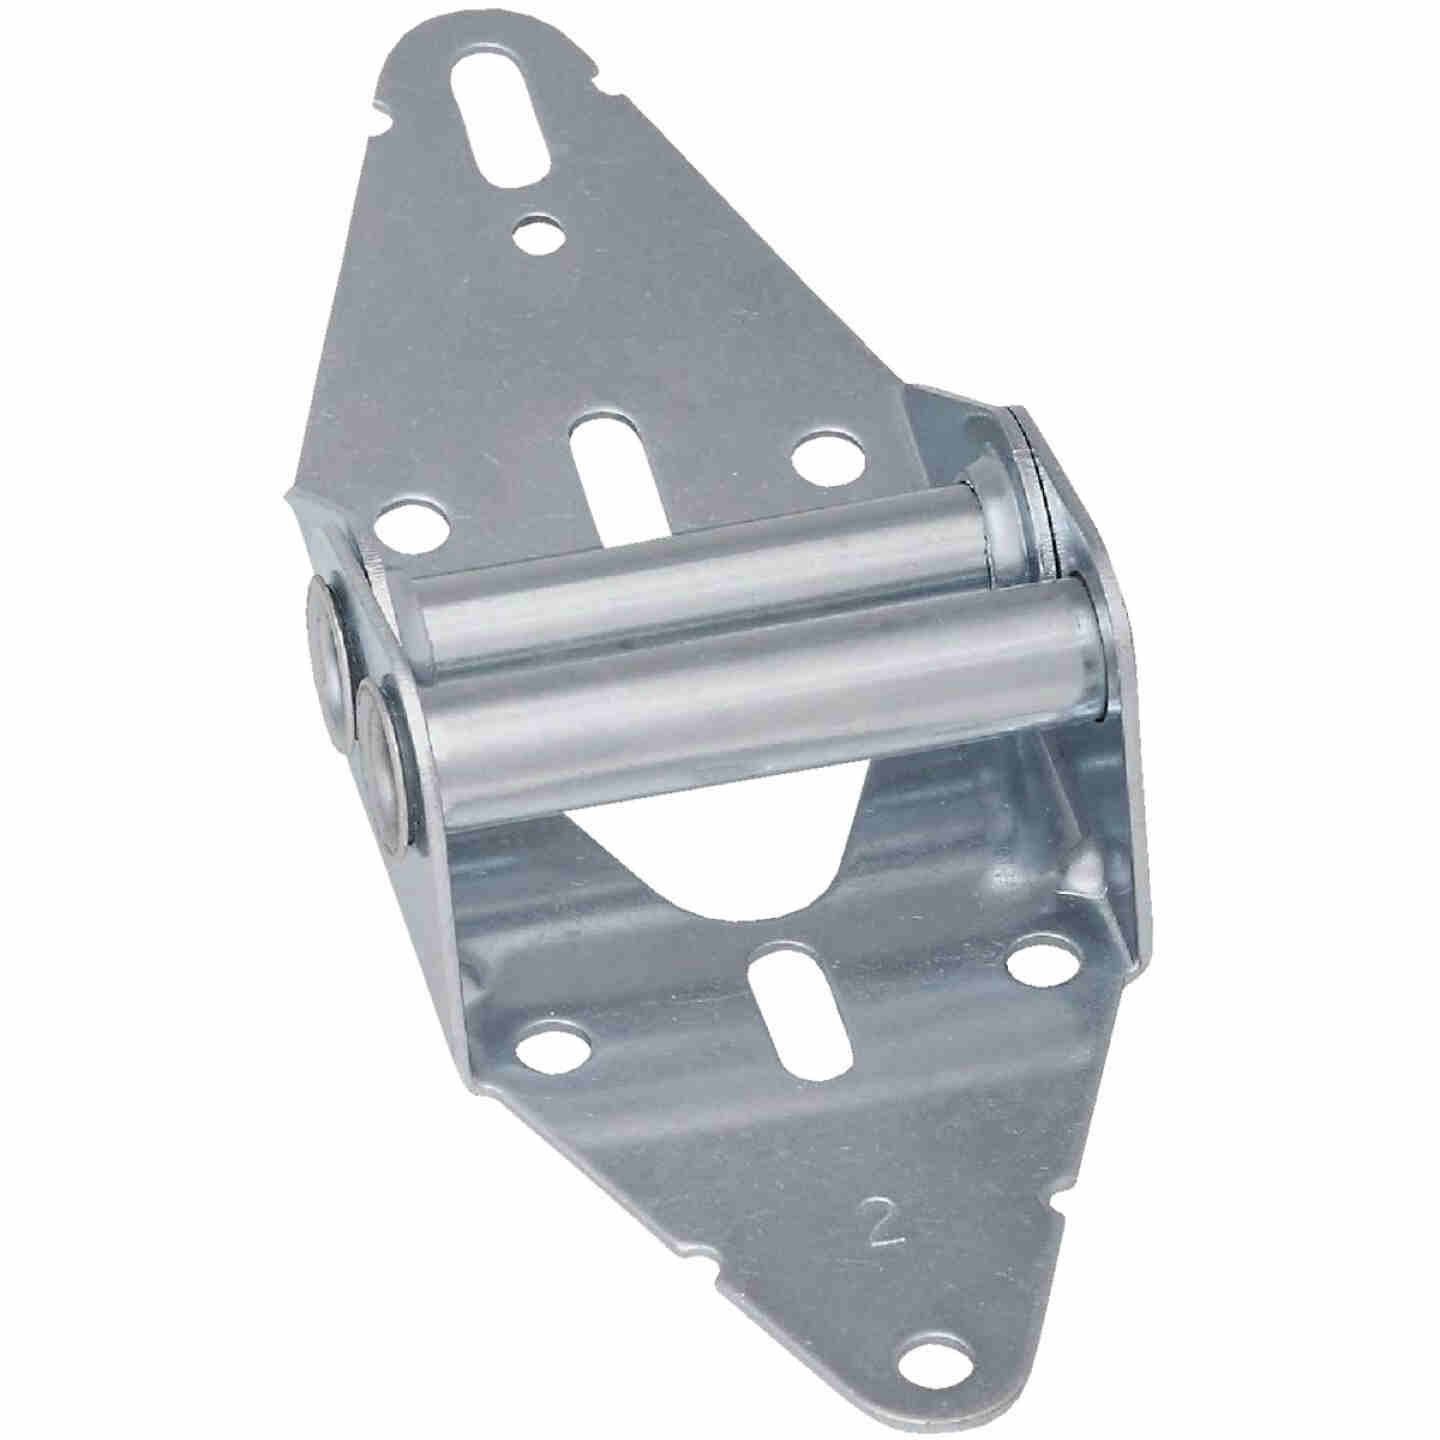 National #2 14 Ga. Galvanized Steel Garage Door Hinge Image 1